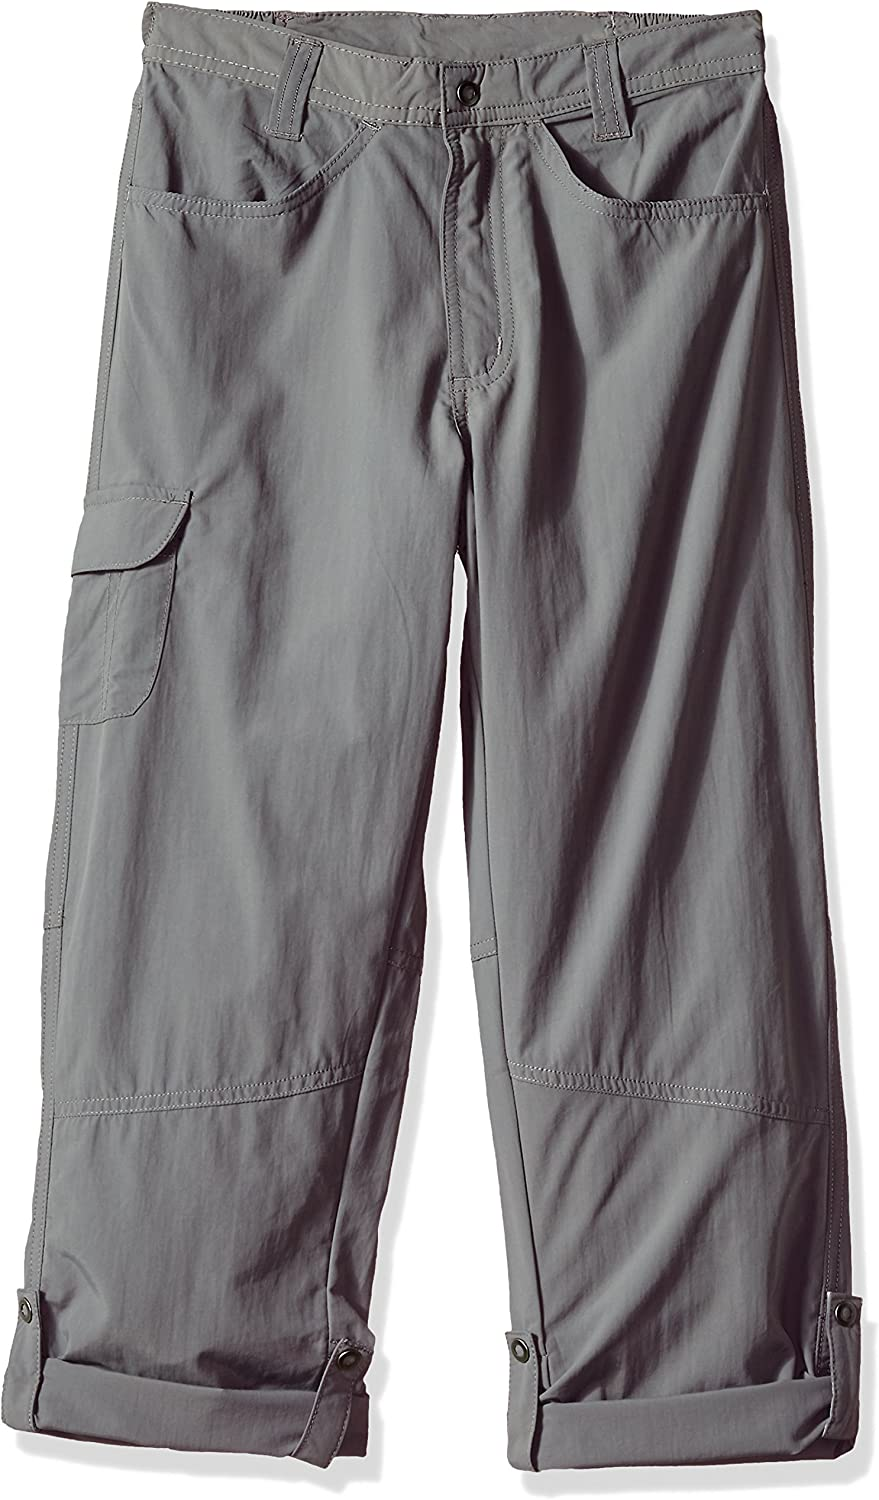 Castle Rock White Sierra Youth Trail Convertible Pants Small